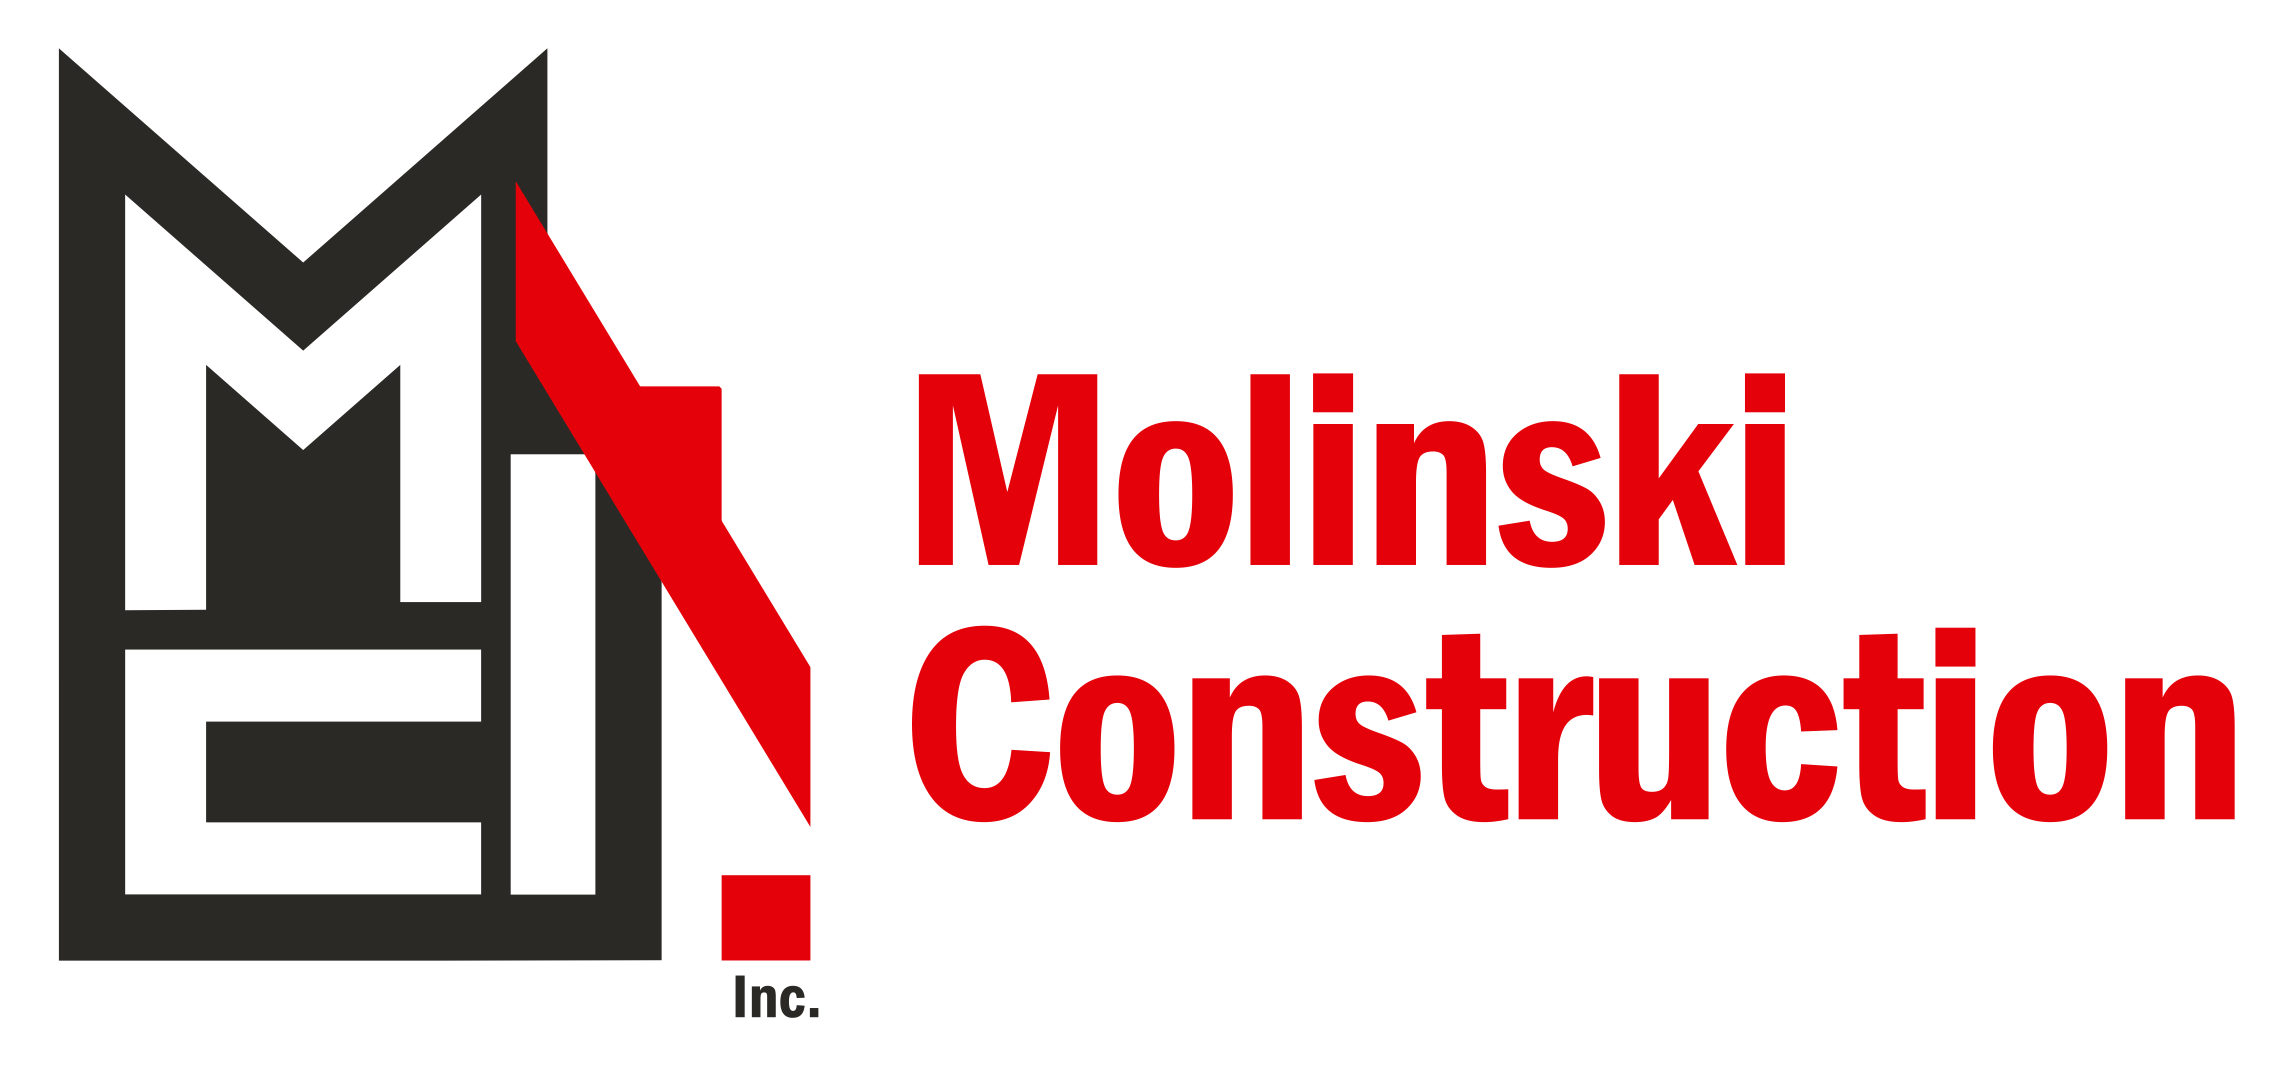 Molinski Construction Inc.